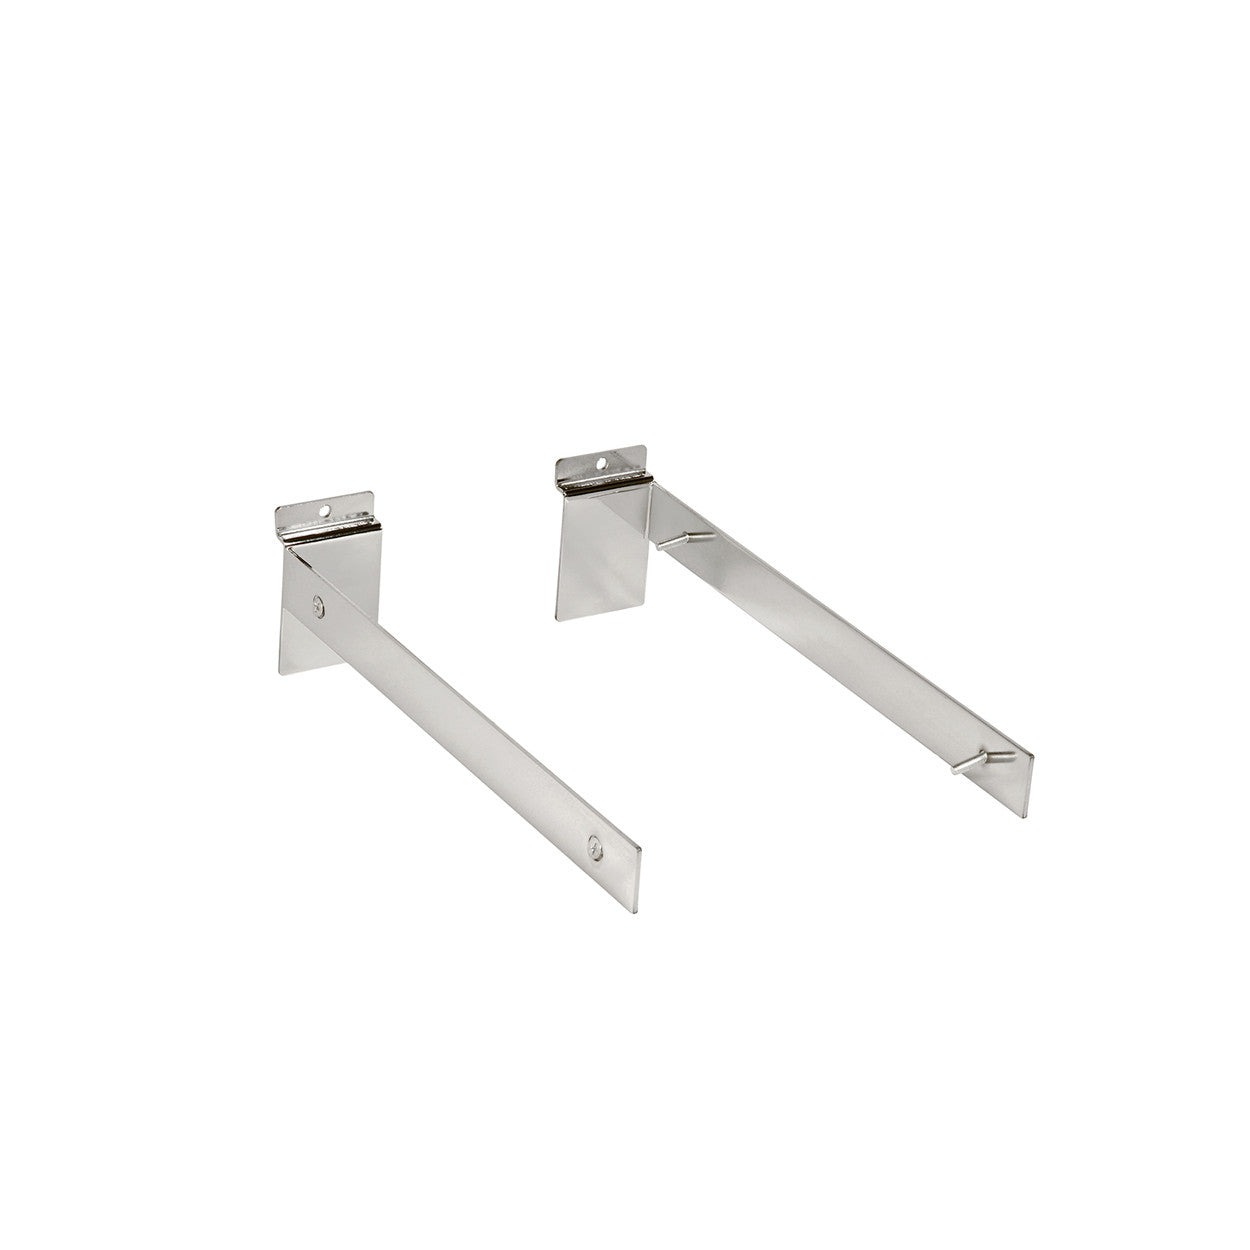 Slot System Fixed Shelf 300 Mm Bracket Set With Screws 300 D X 30 H X 2.5Mm Thick